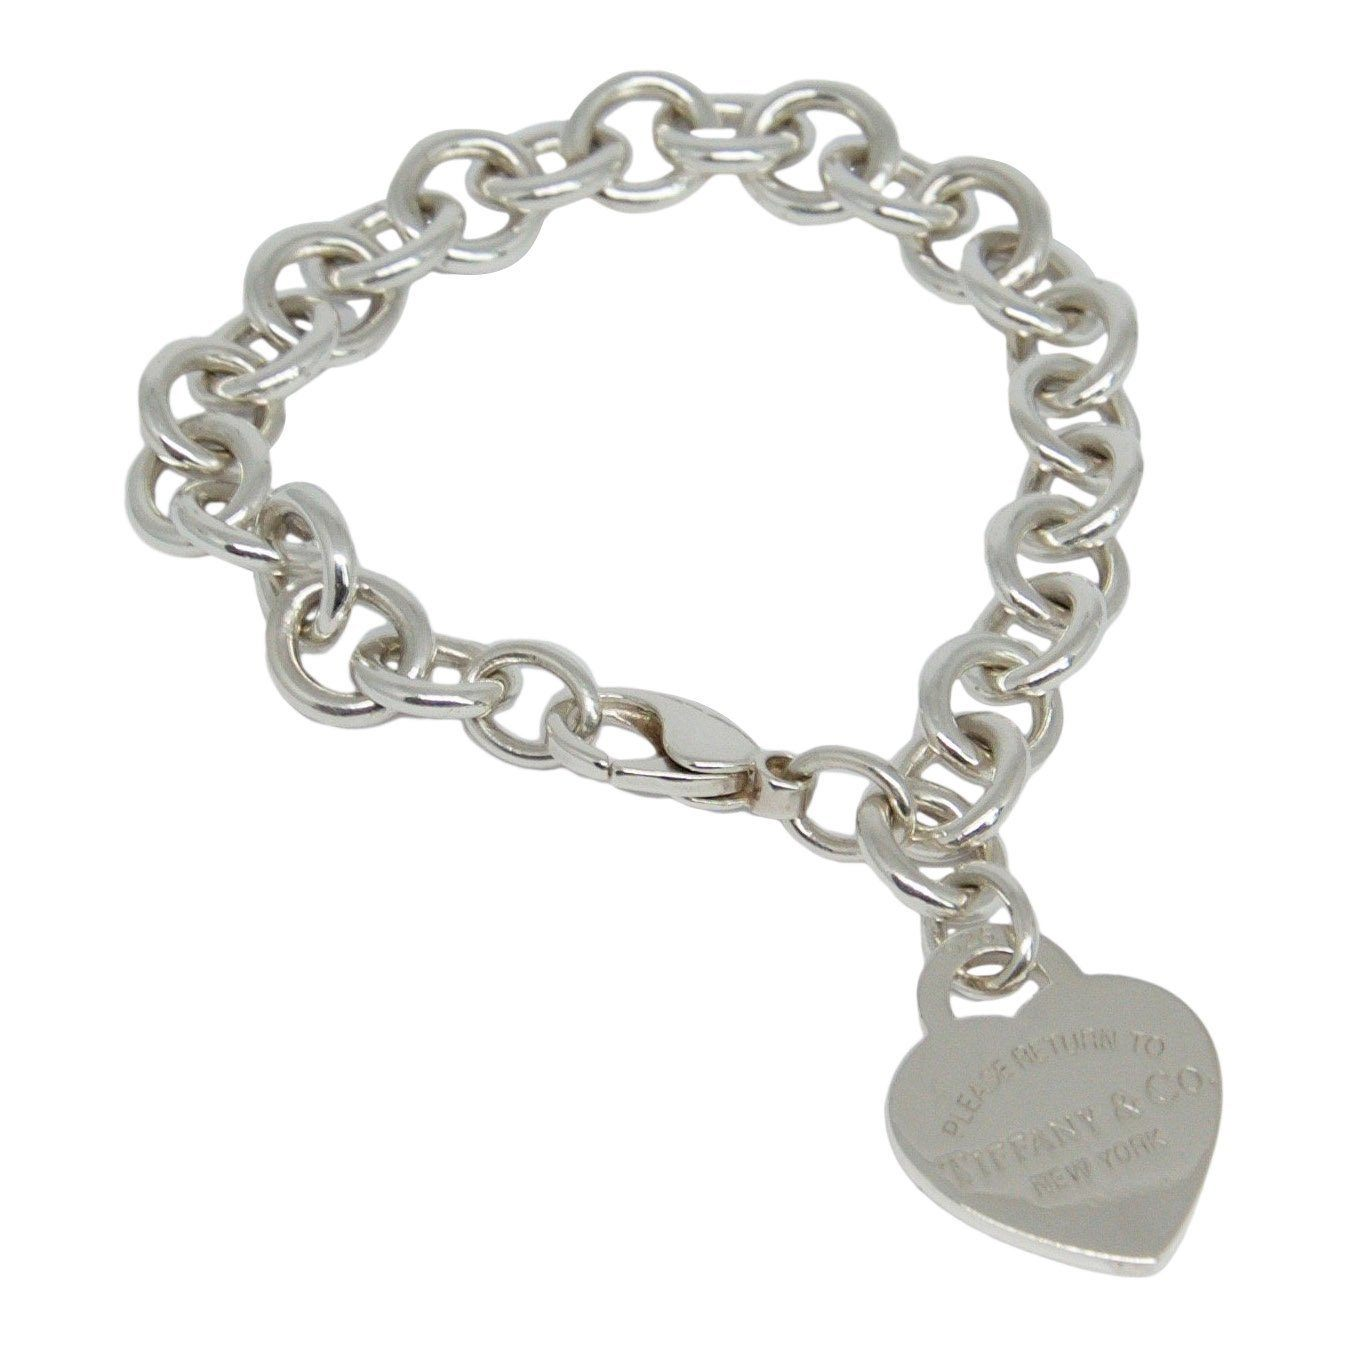 5e2b173ebed8 Tiffany   Co. Return To Tiffany Heart Tag Charm Bracelet - Bracelets ...